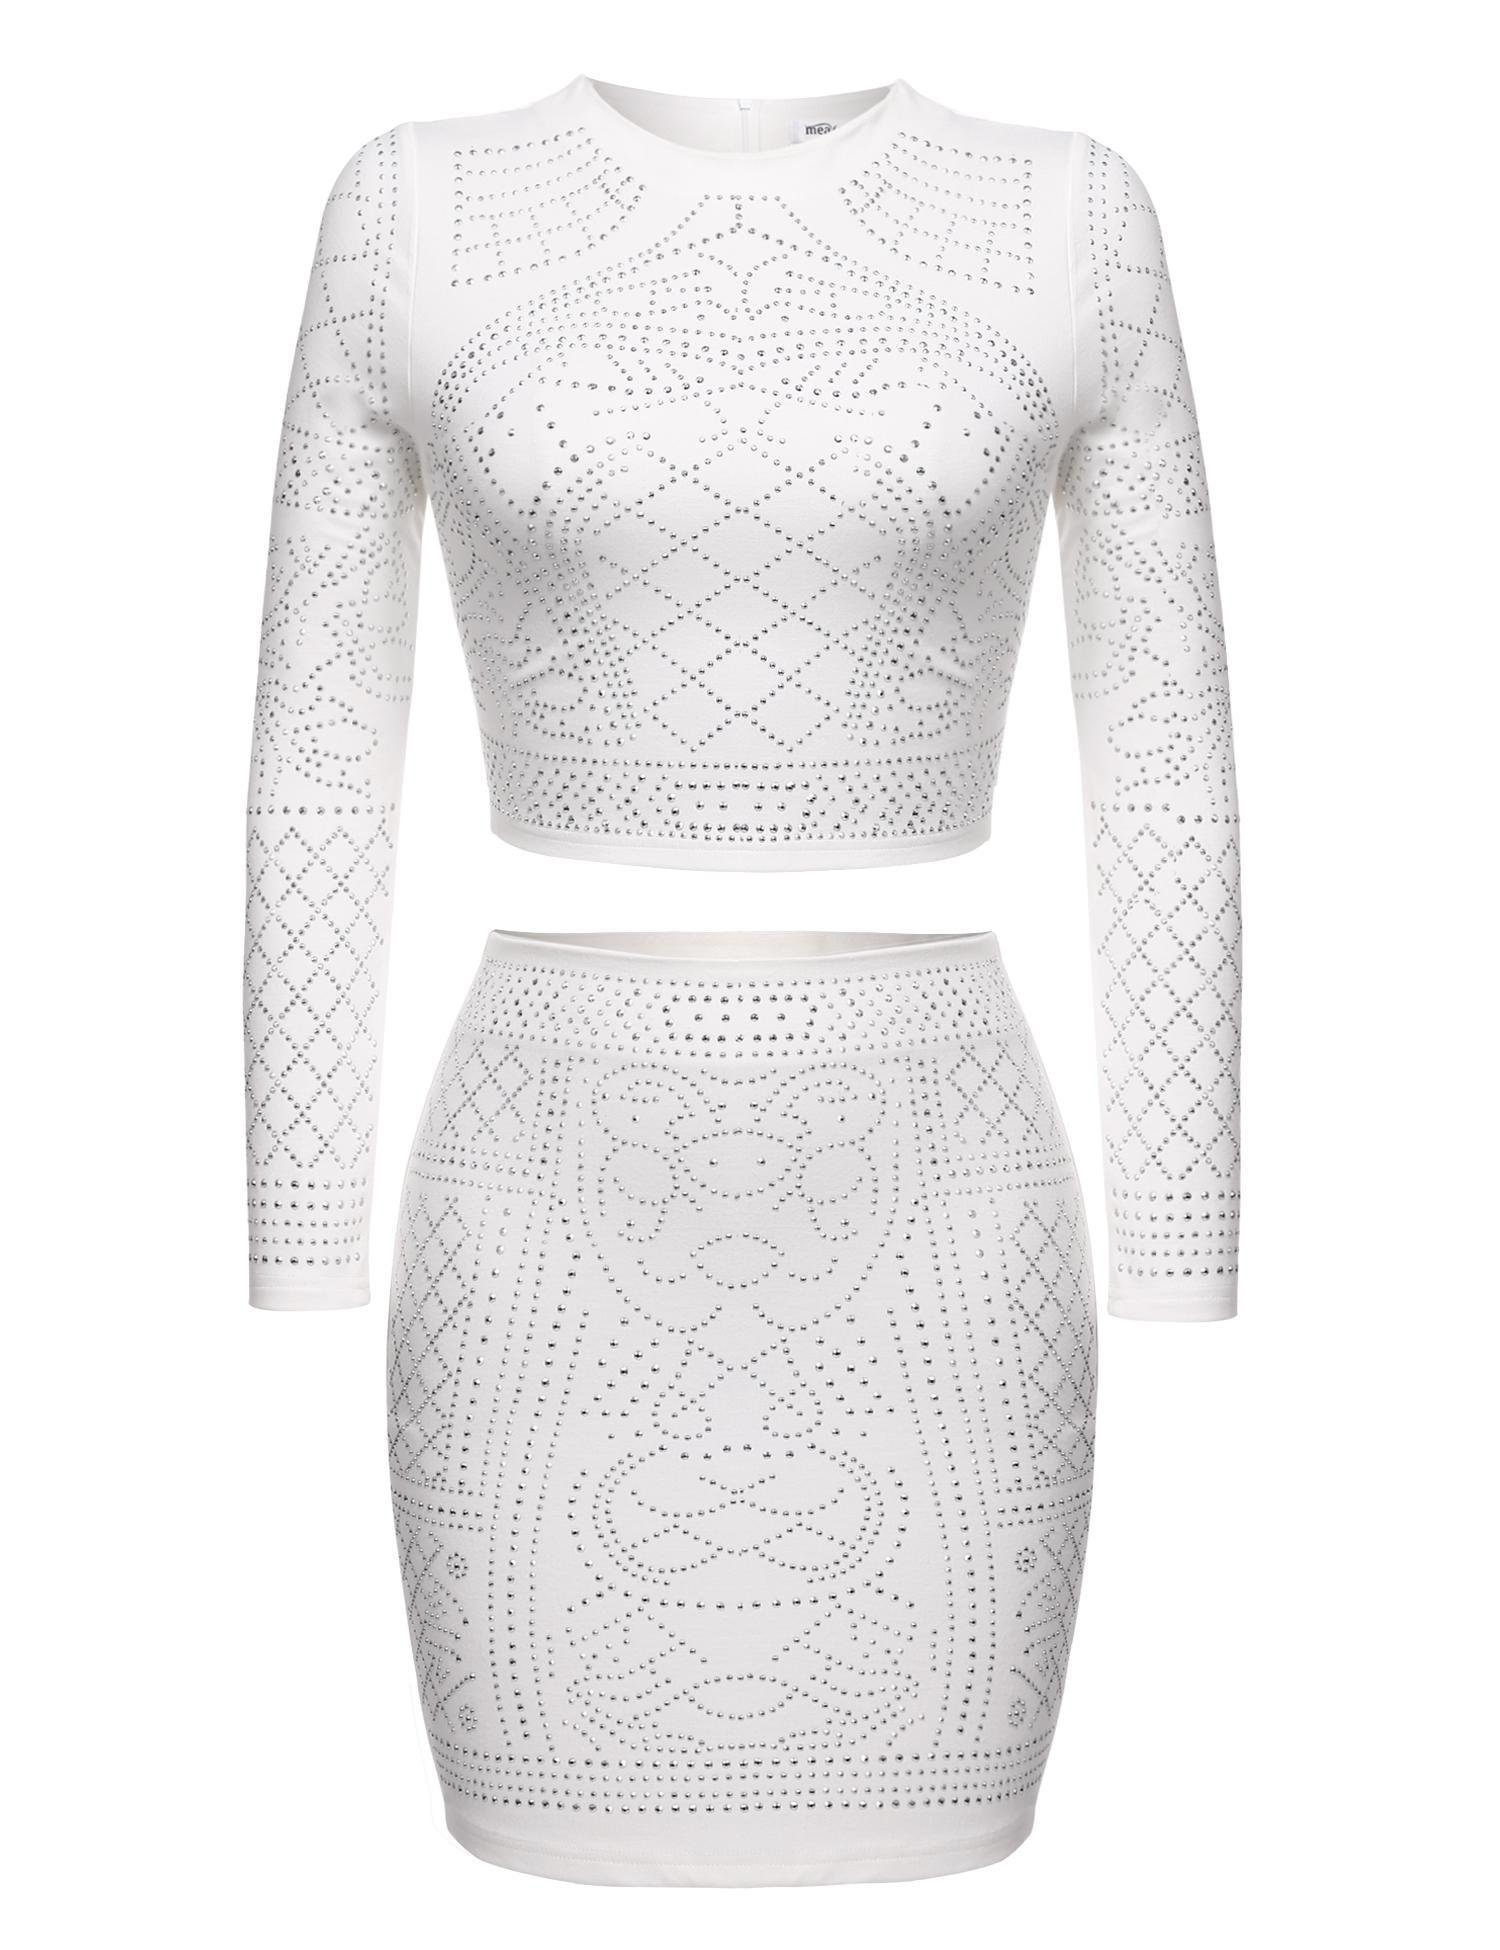 ELESOL Womens Studded Outfit Two Pieces Bodycon Crop Top and Mini Skirt Set(White XL)